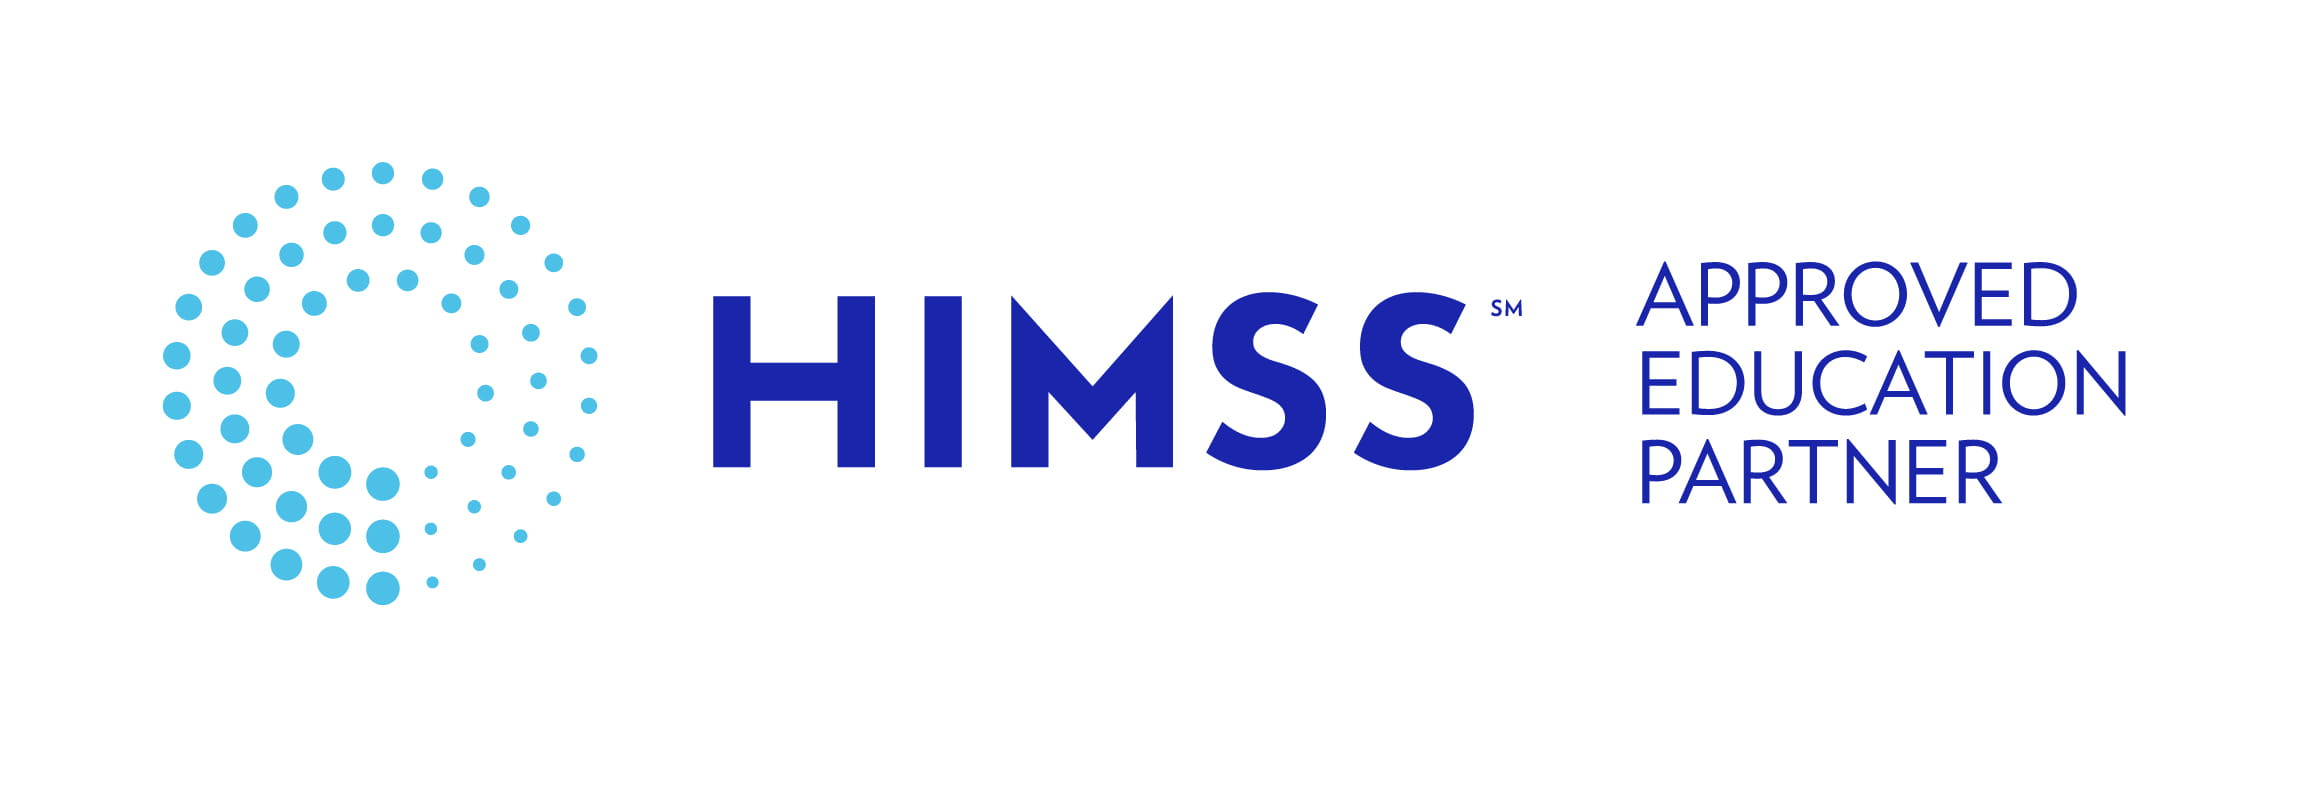 HIMSS Approved Education Partner Logo